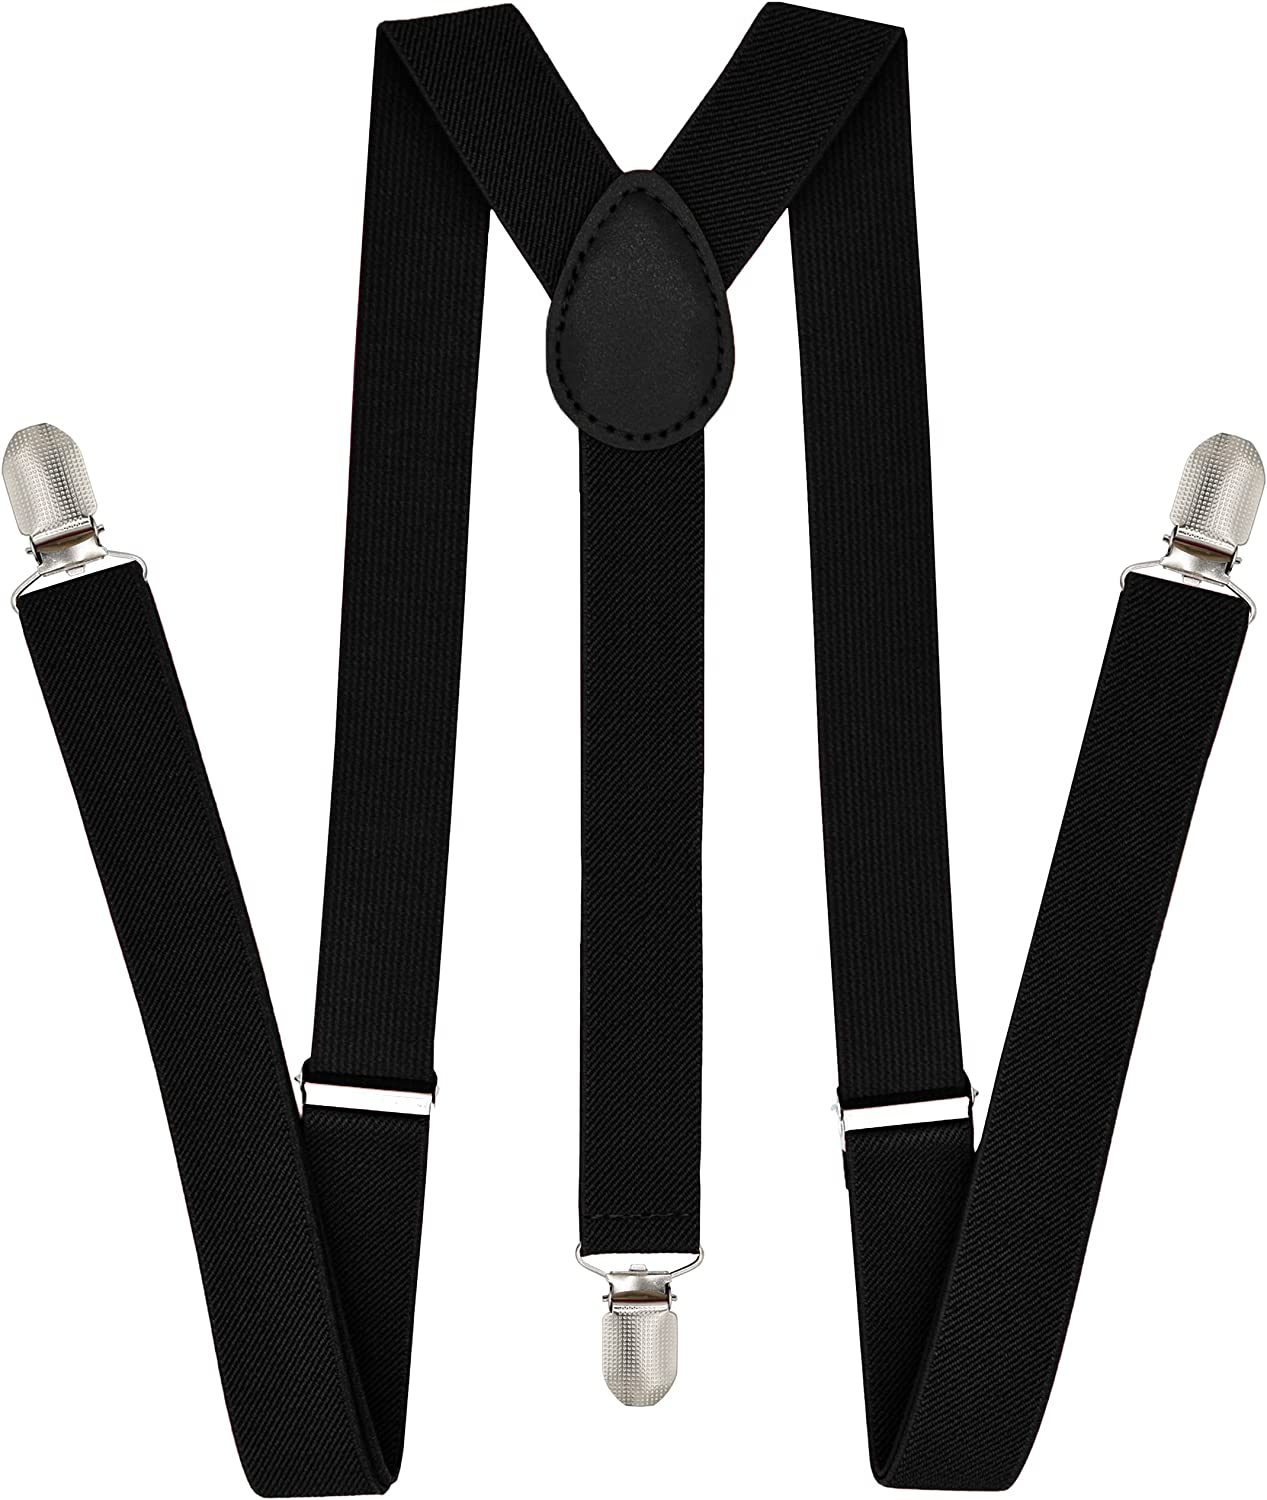 Trilece Suspenders for Men - Adjustable Size Safety and trust Wide inch Elastic 1 Quantity limited